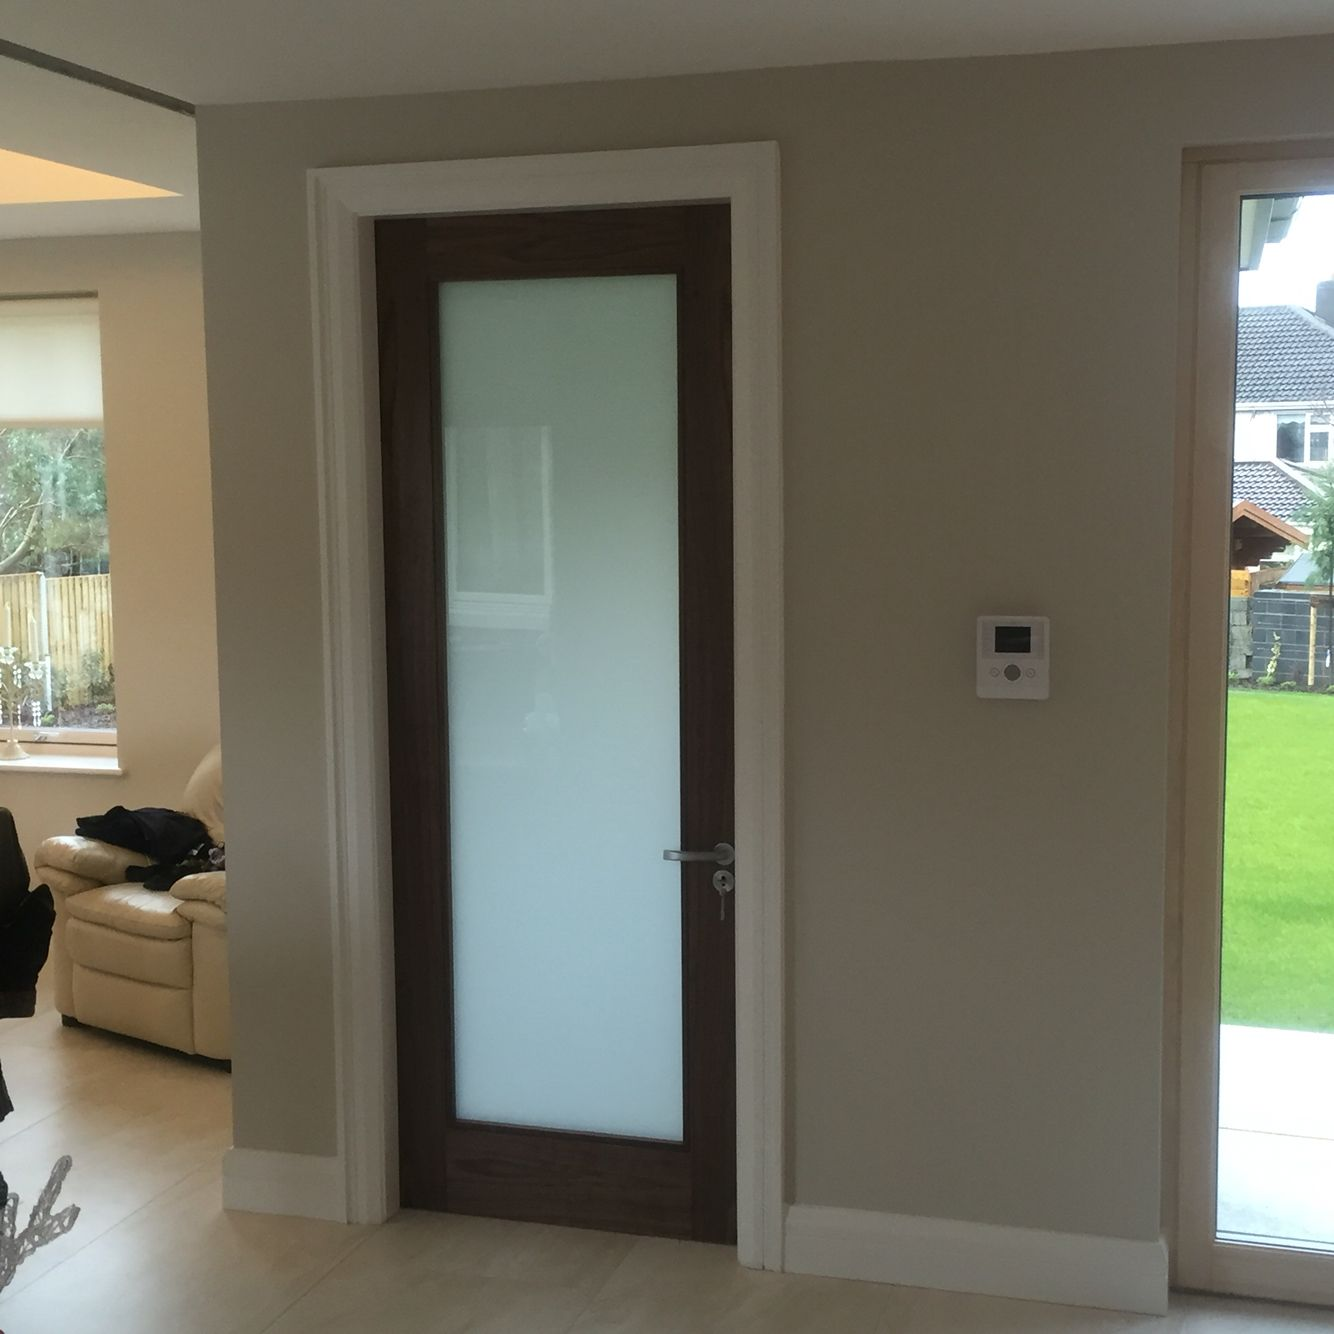 Walnut internal door with frosted glass & Walnut internal door with frosted glass | Versatility Of Sliding ...